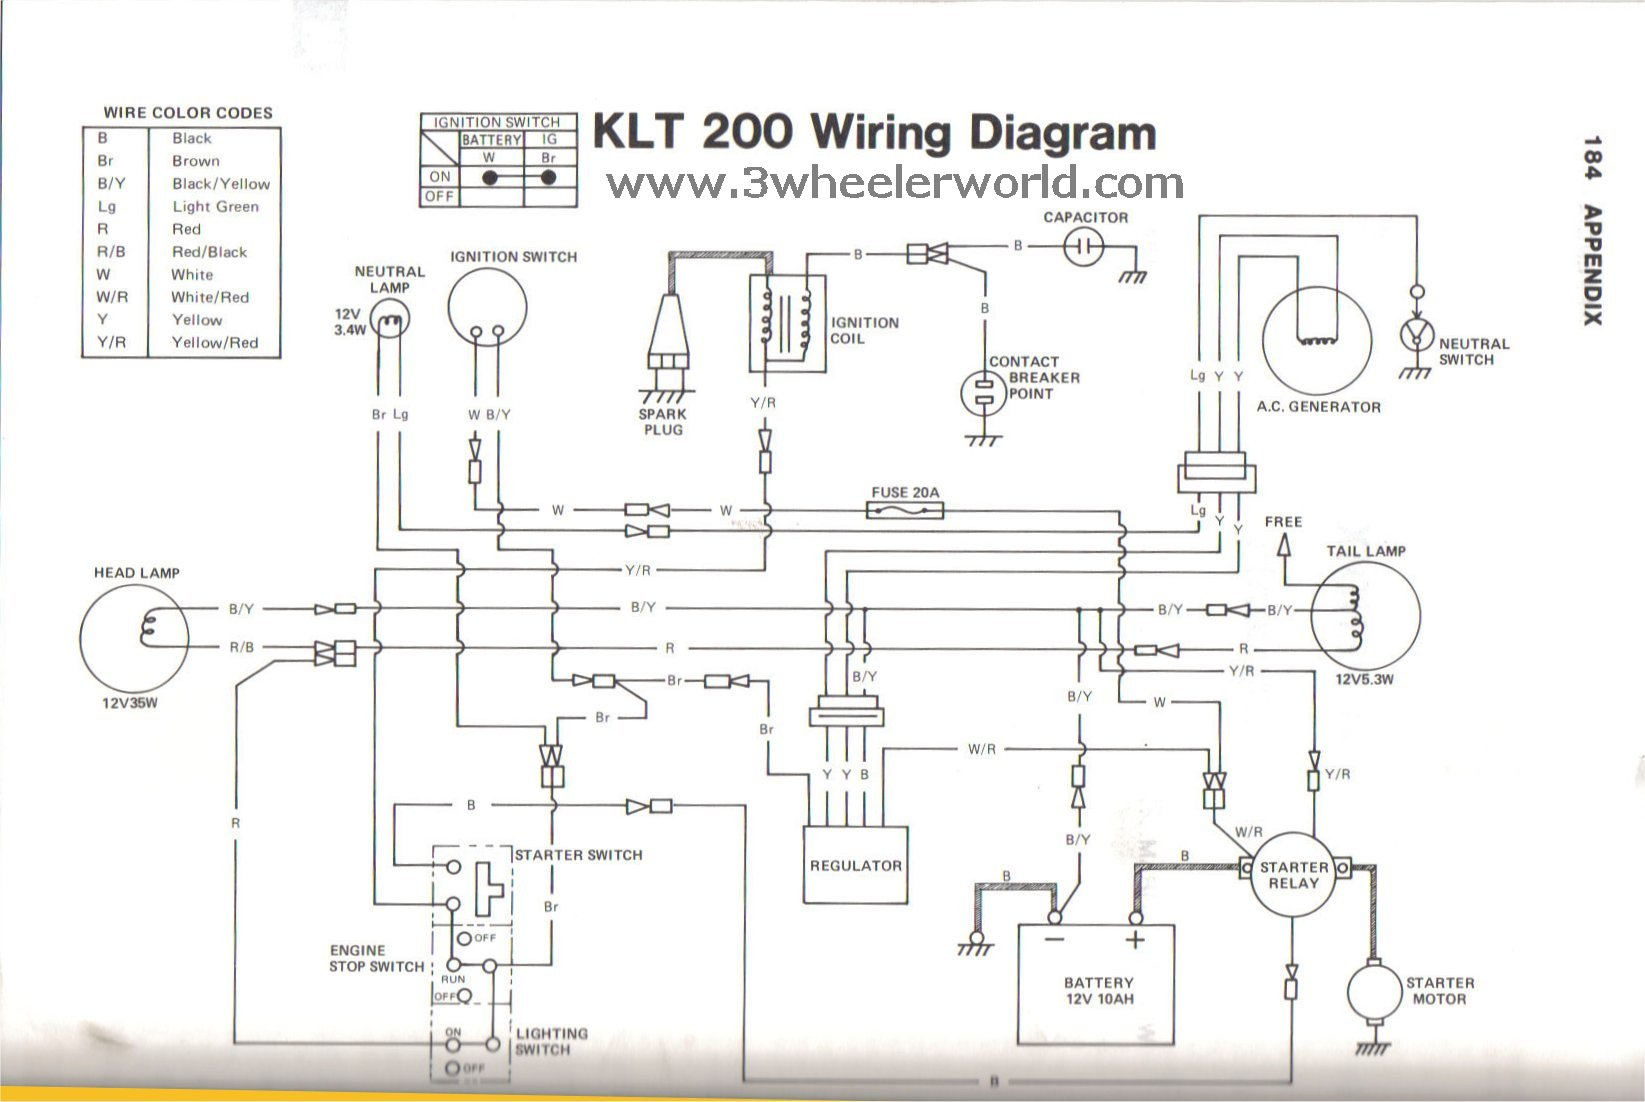 Kawasaki V Twin Wiring Diagram | Wiring Diagram on